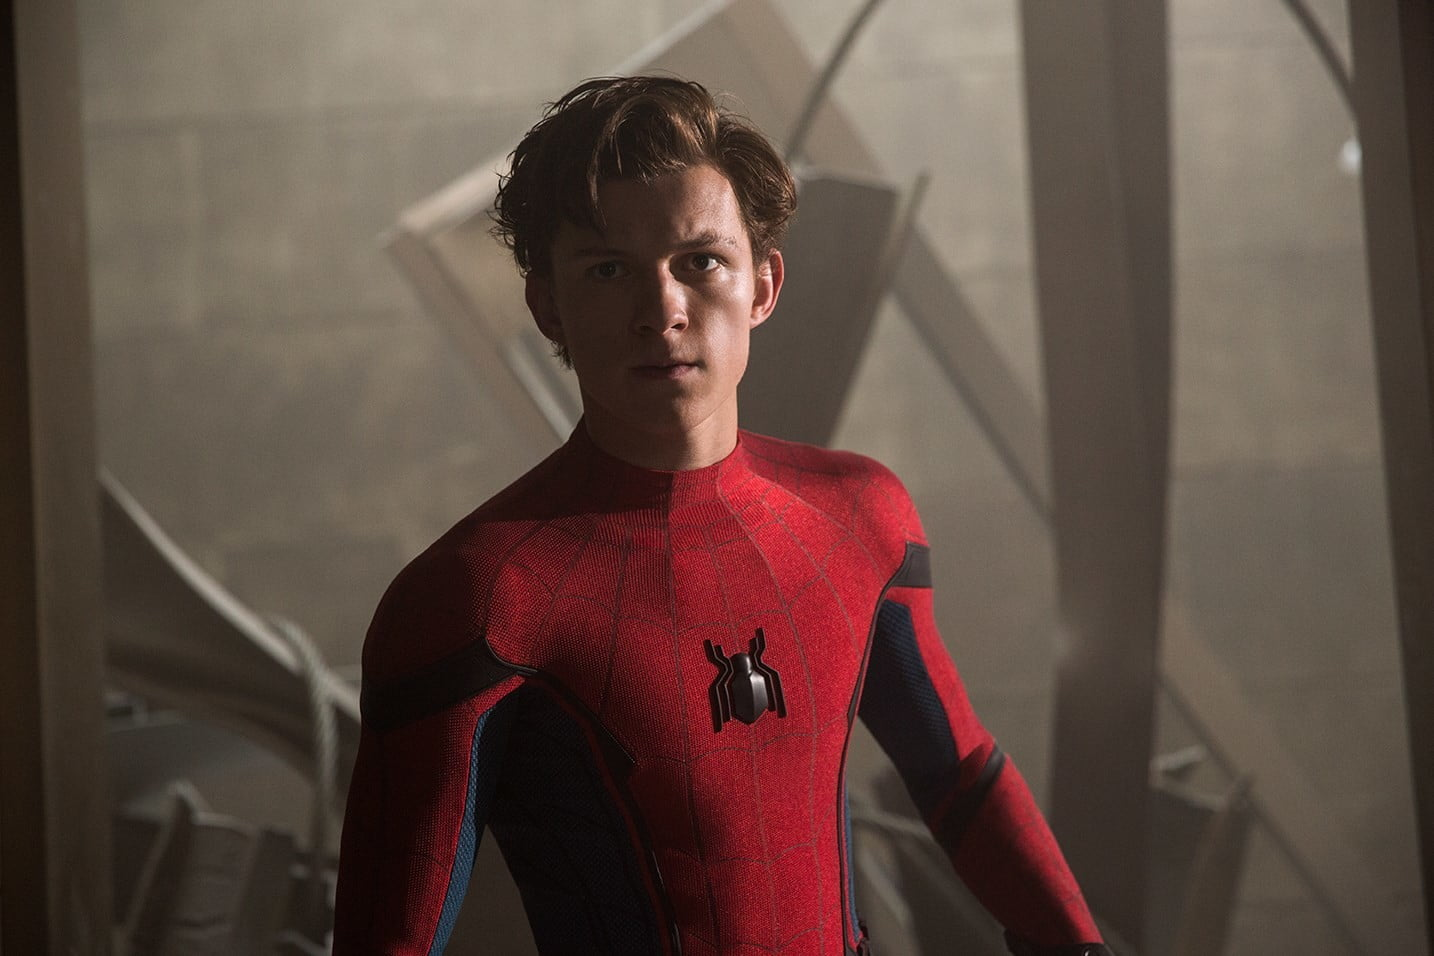 9.) Tom Holland, Spider-Man: Homecoming